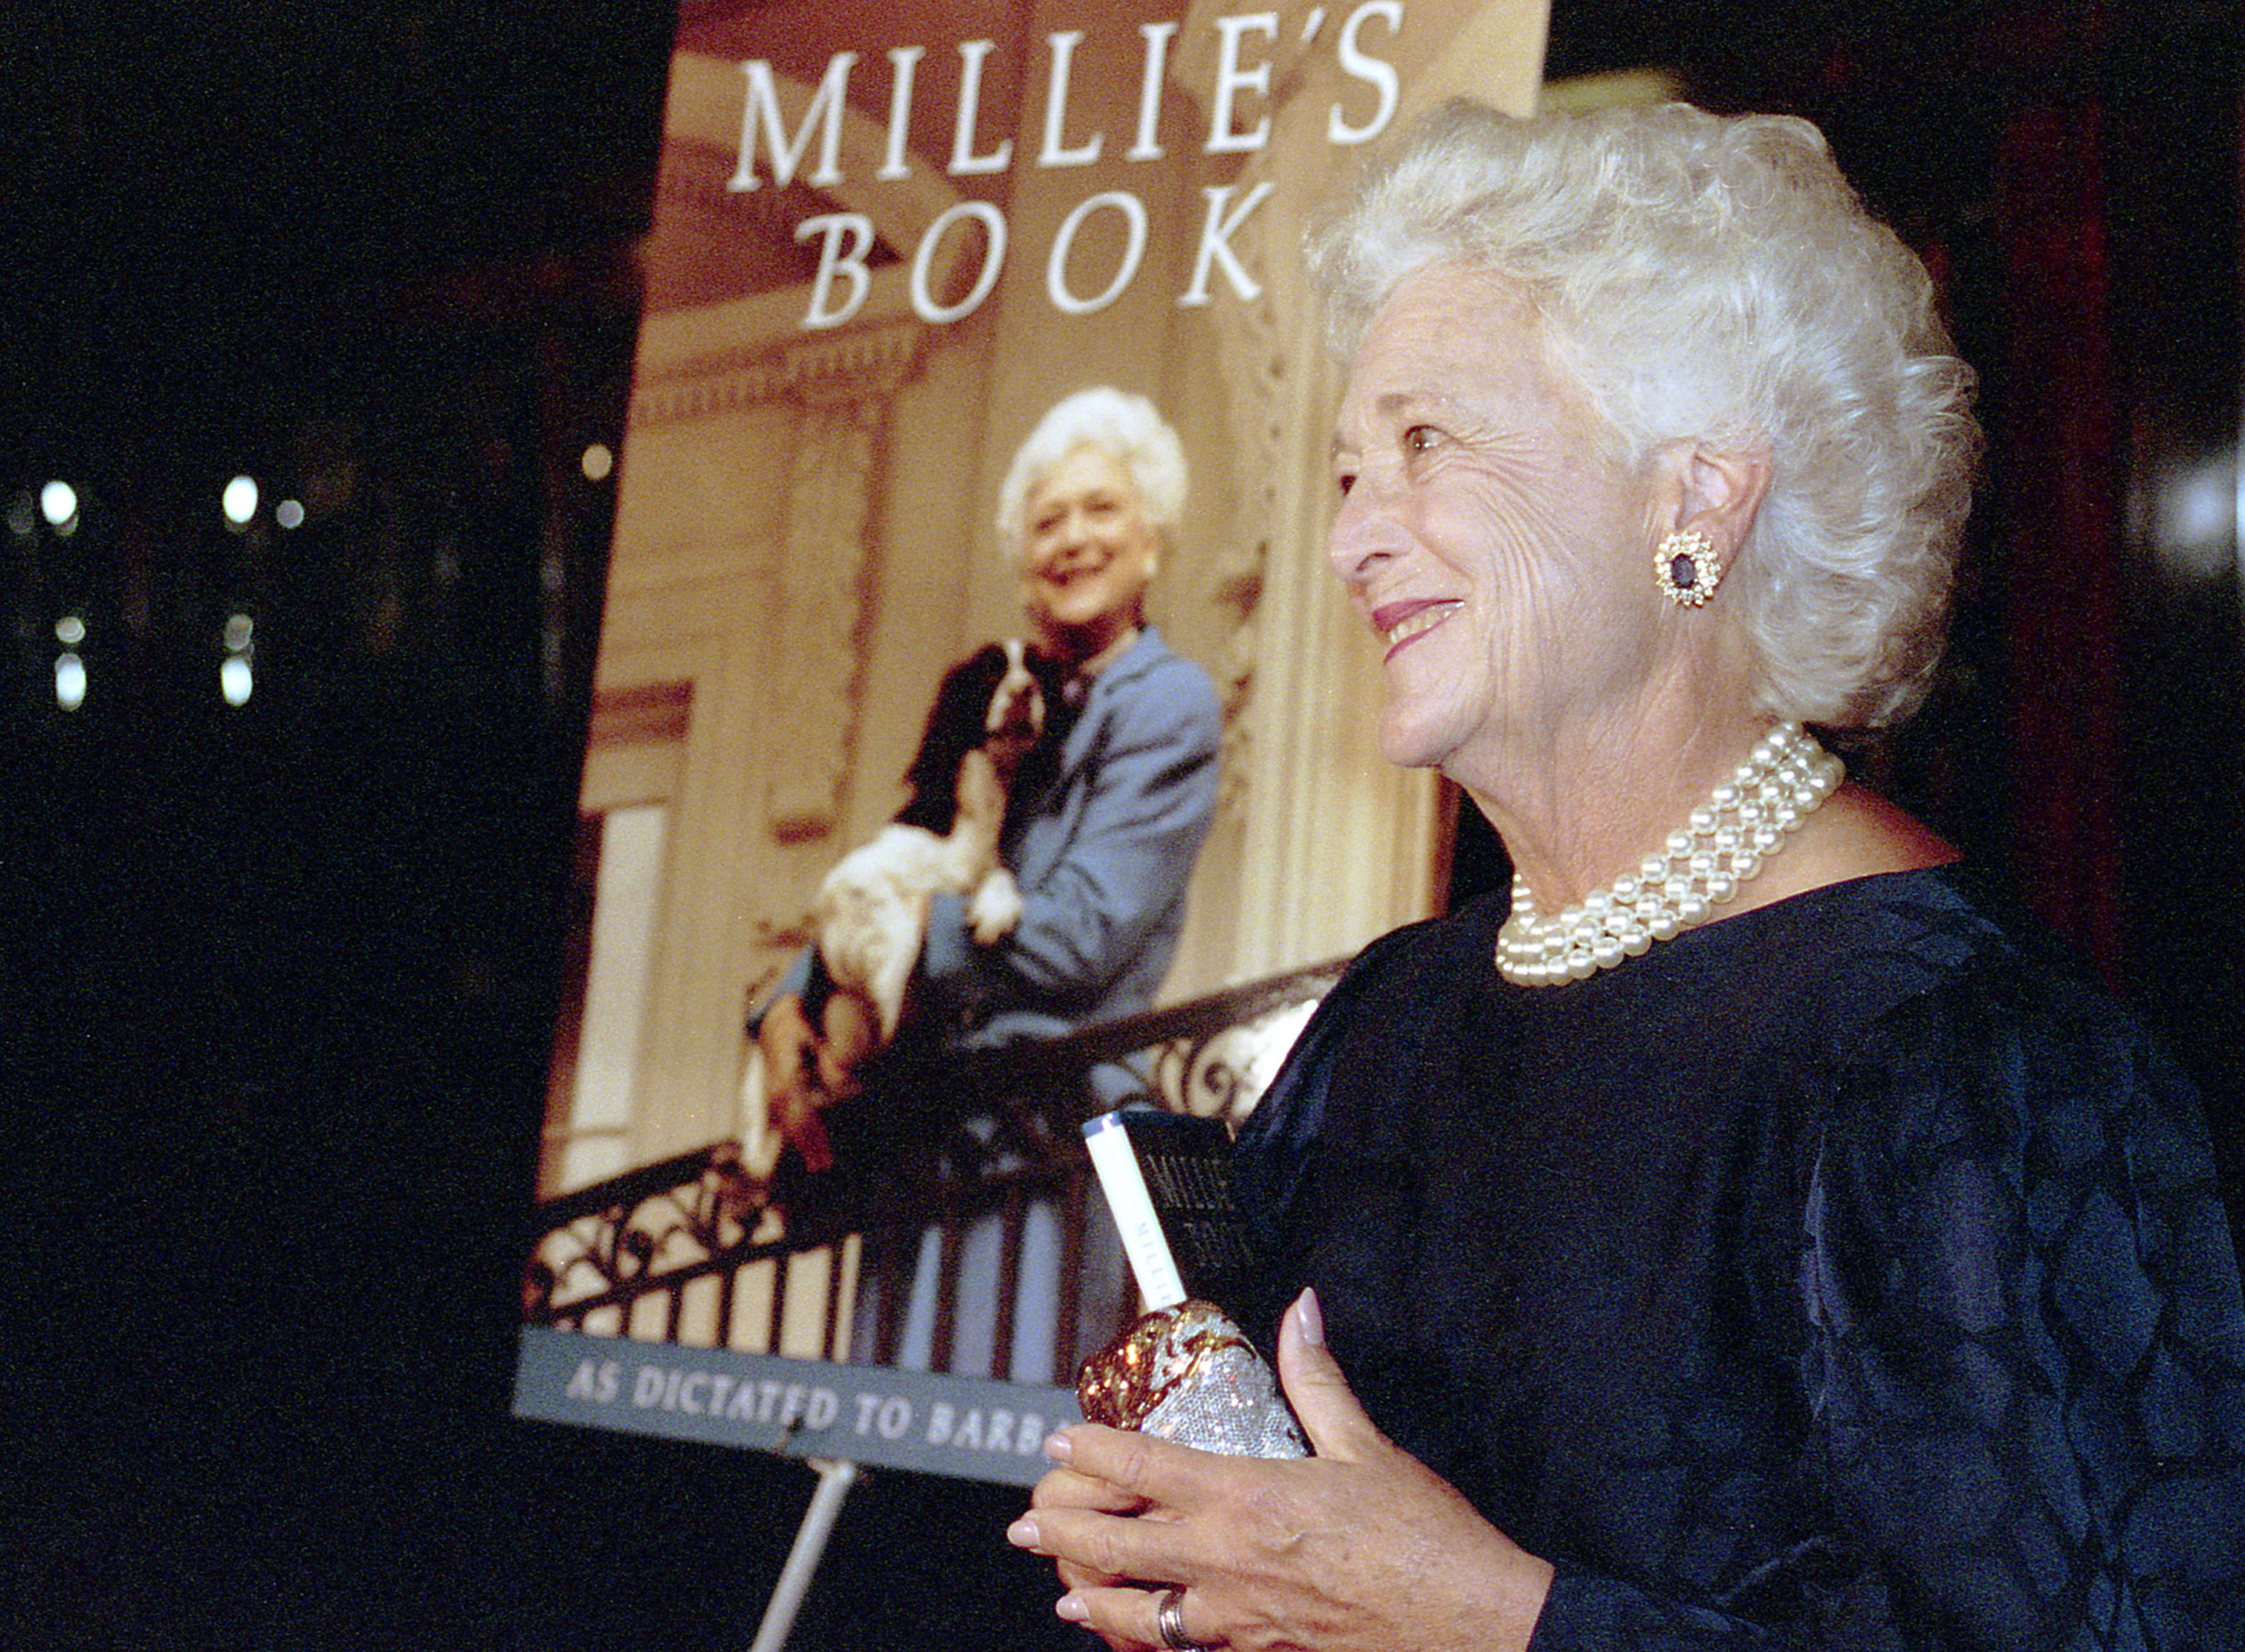 Mrs.Bush at the opening celebration for Millie's Book